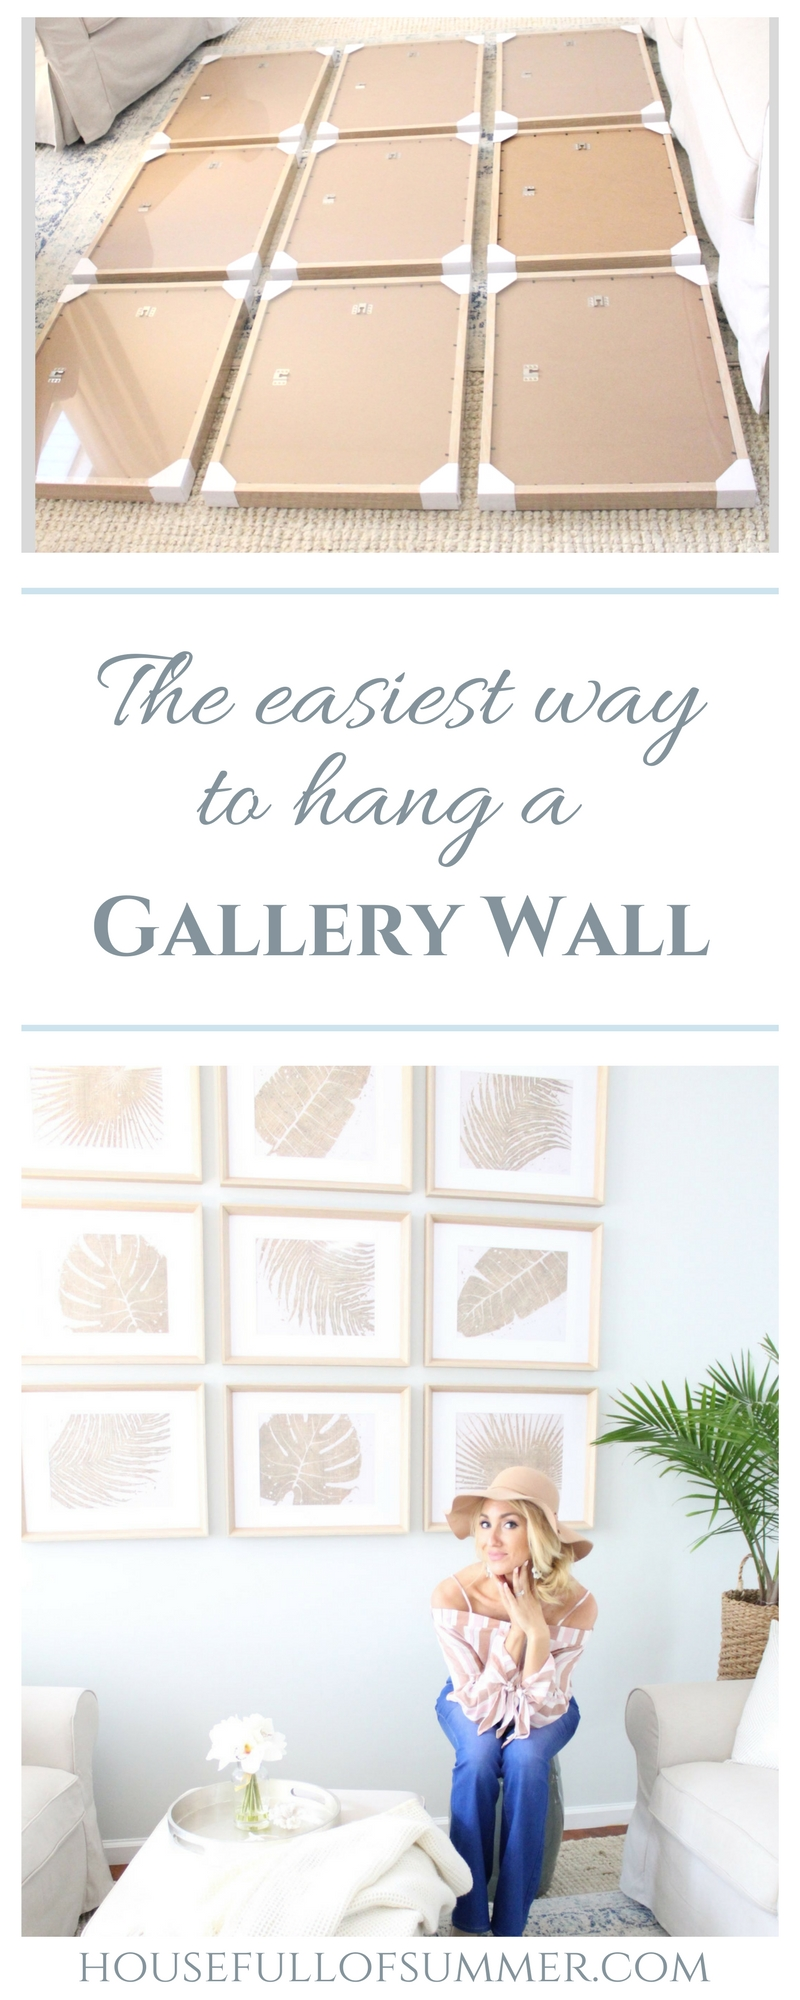 The Easiest Way to Hang a Gallery Wall | House Full of Summer, home diy project, wall decor ideas, coastal wall art, tropical leaves, gold framed frond art, wooden frames with white matting, 9 frames, coastal home interior, tropical chic style, spring style, spring decor, sherwin williams fleur de sel paint color, gray walls, neutral decor, Florida home, beach house